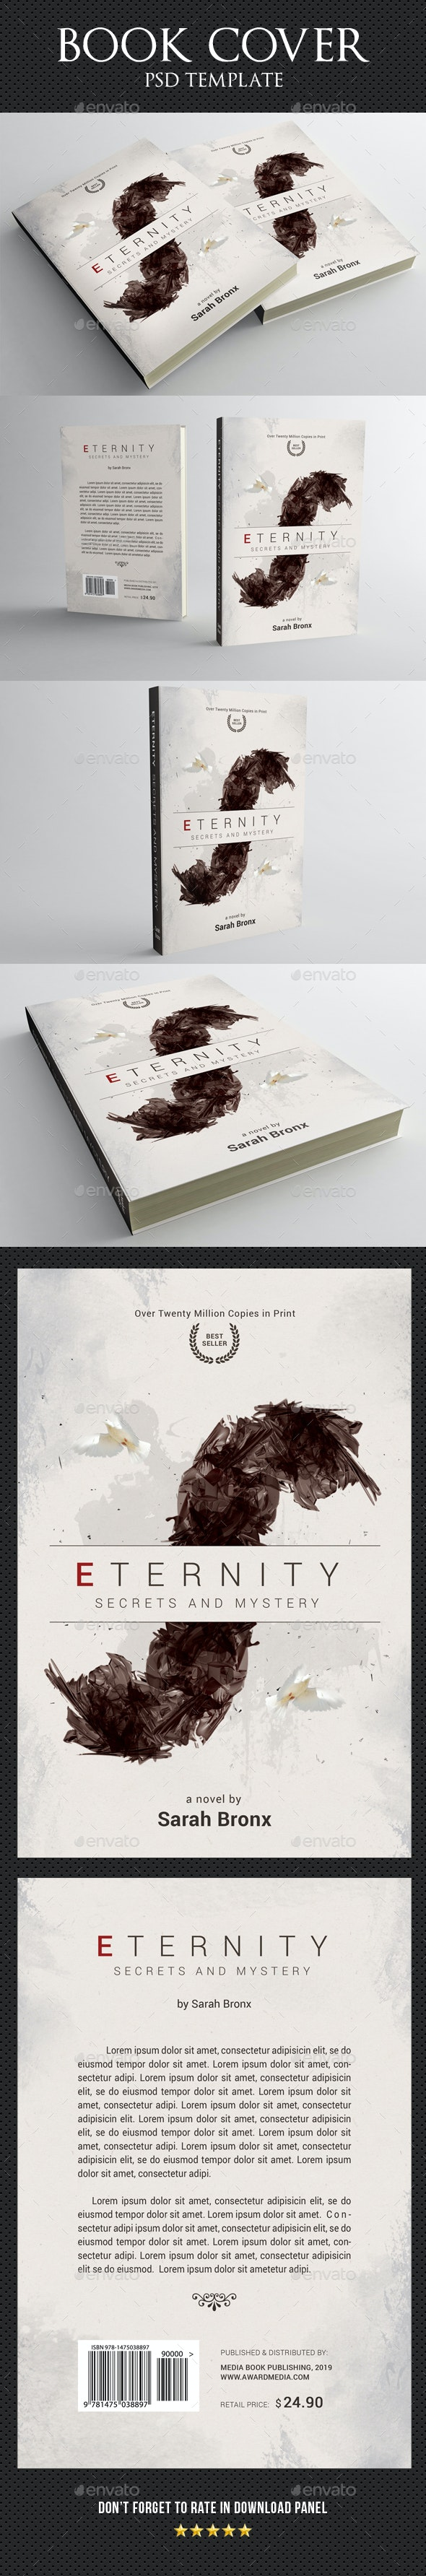 Book Cover Template 60 - Miscellaneous Print Templates